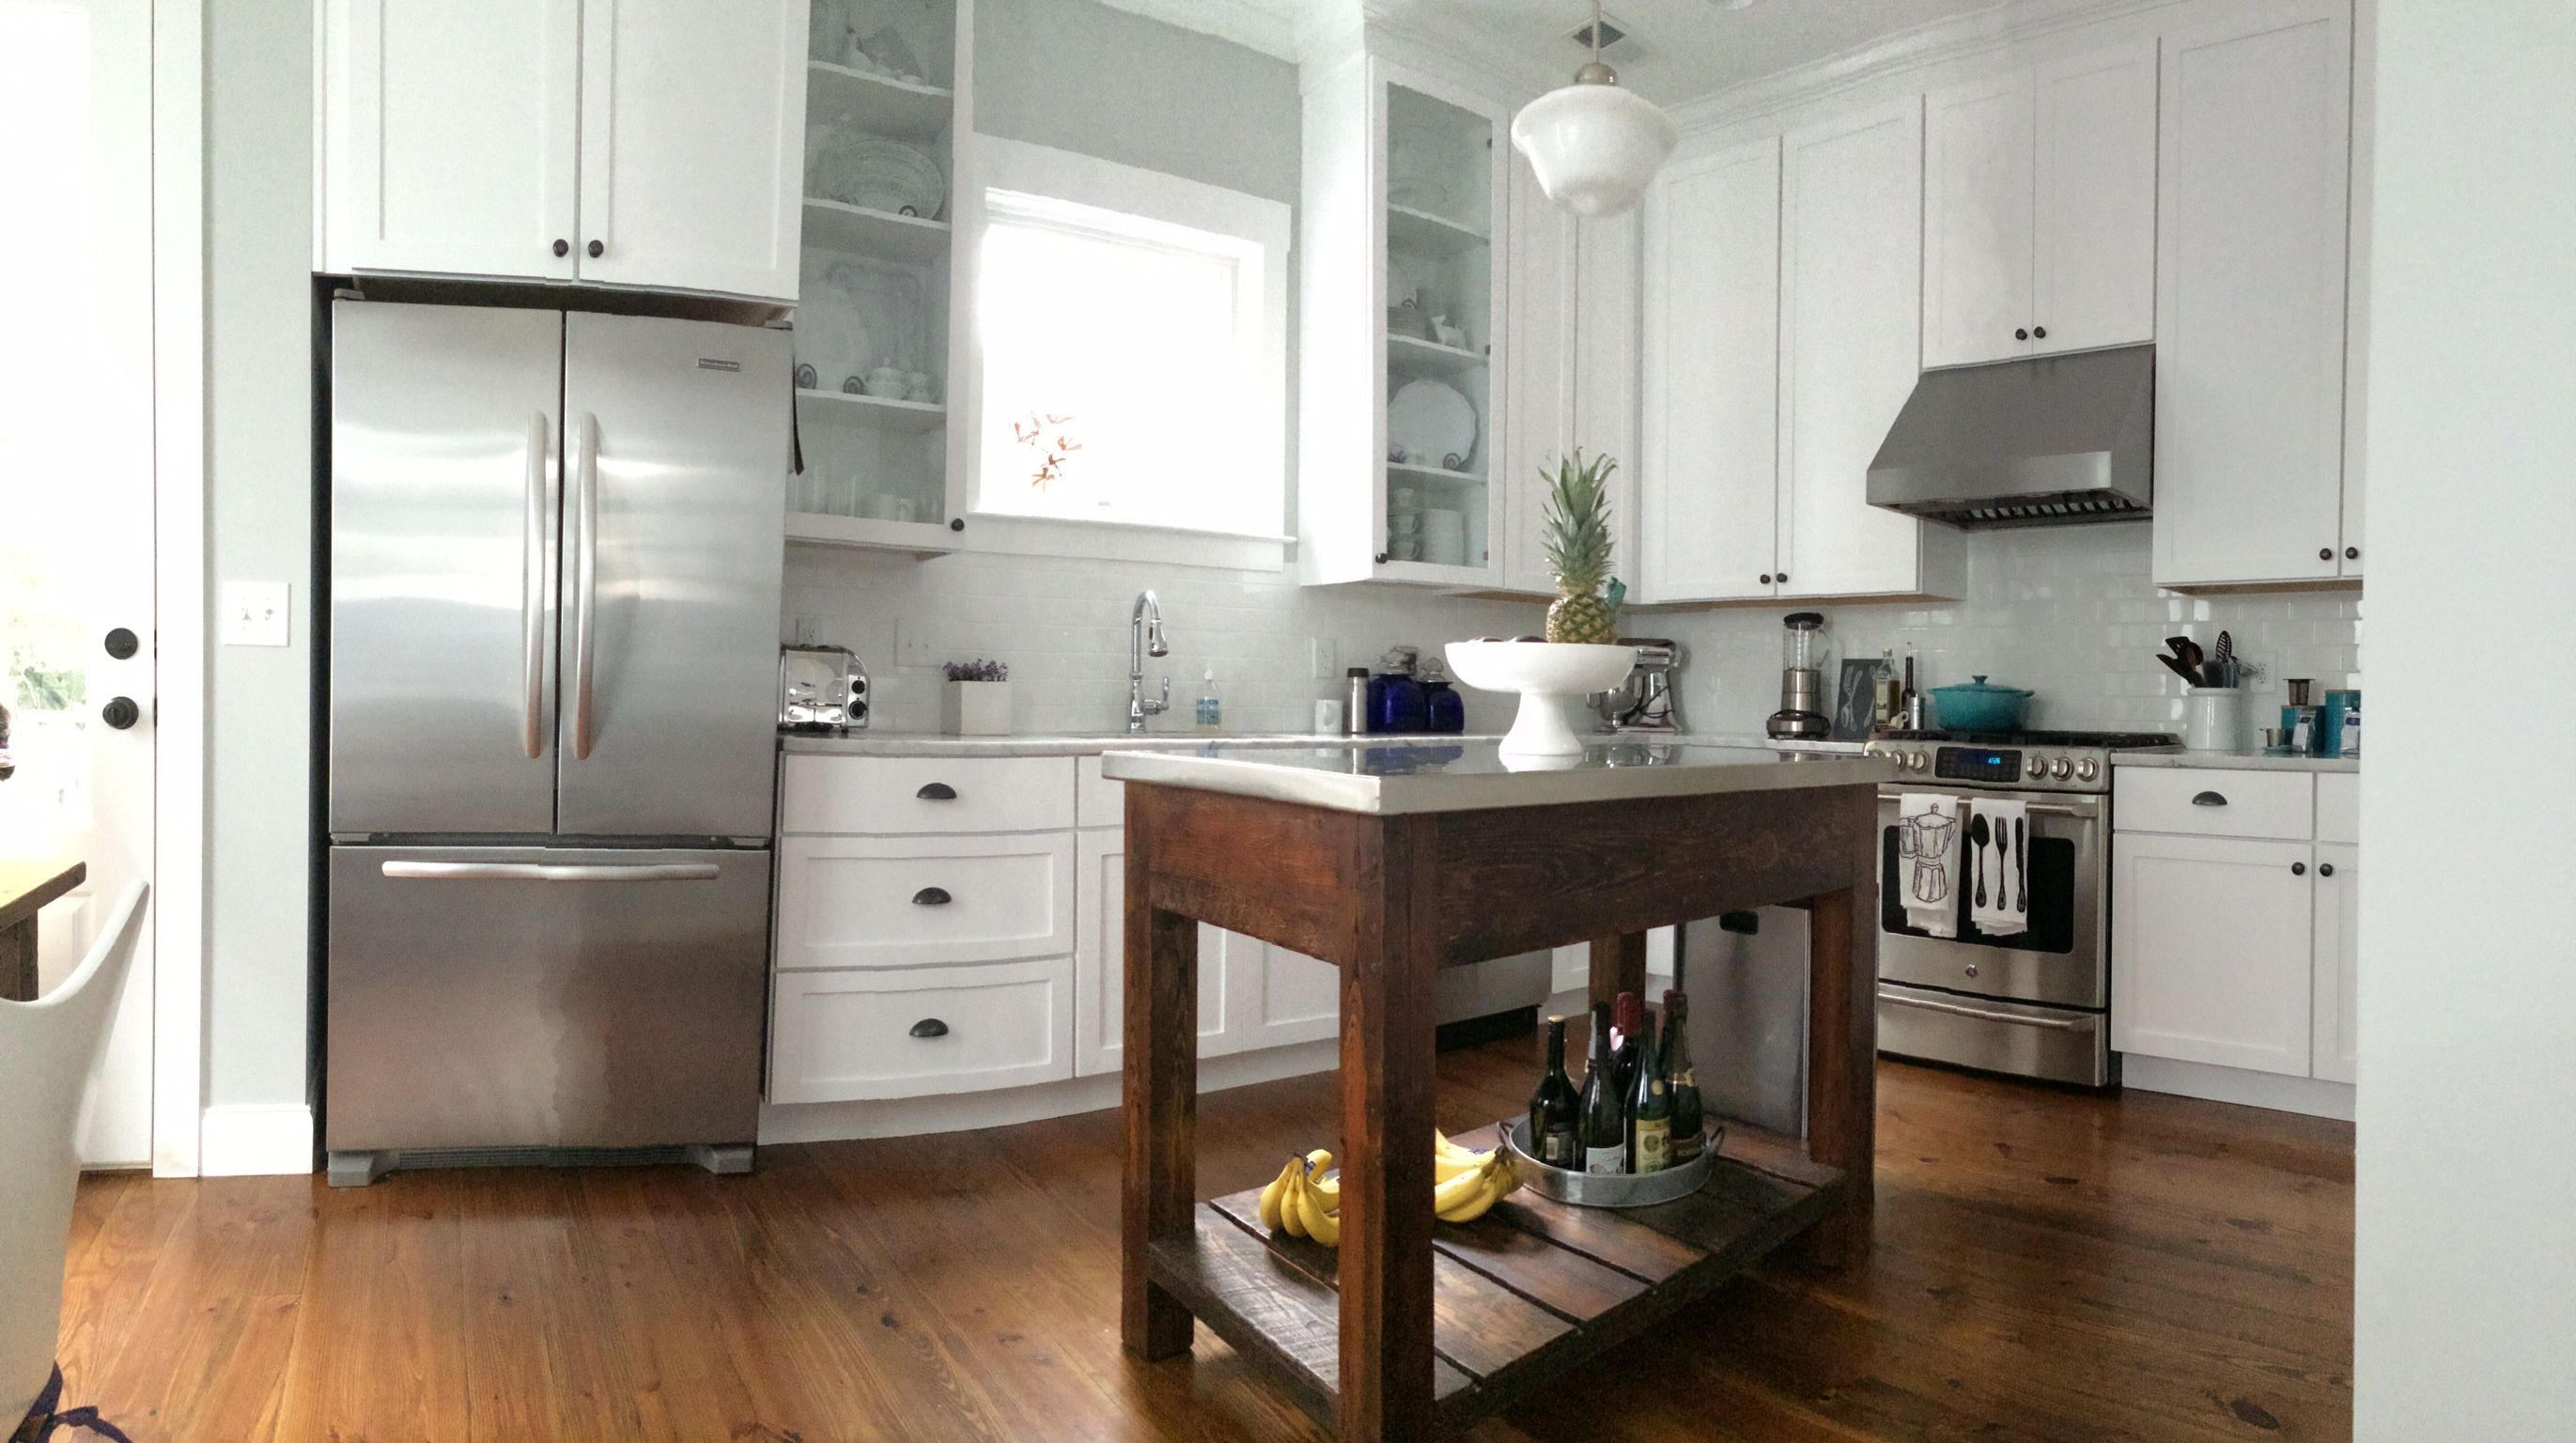 Kitchen Remodel Charleston Sc Kitchen Island Stainless Steel Top With Base Made From Reclaimed